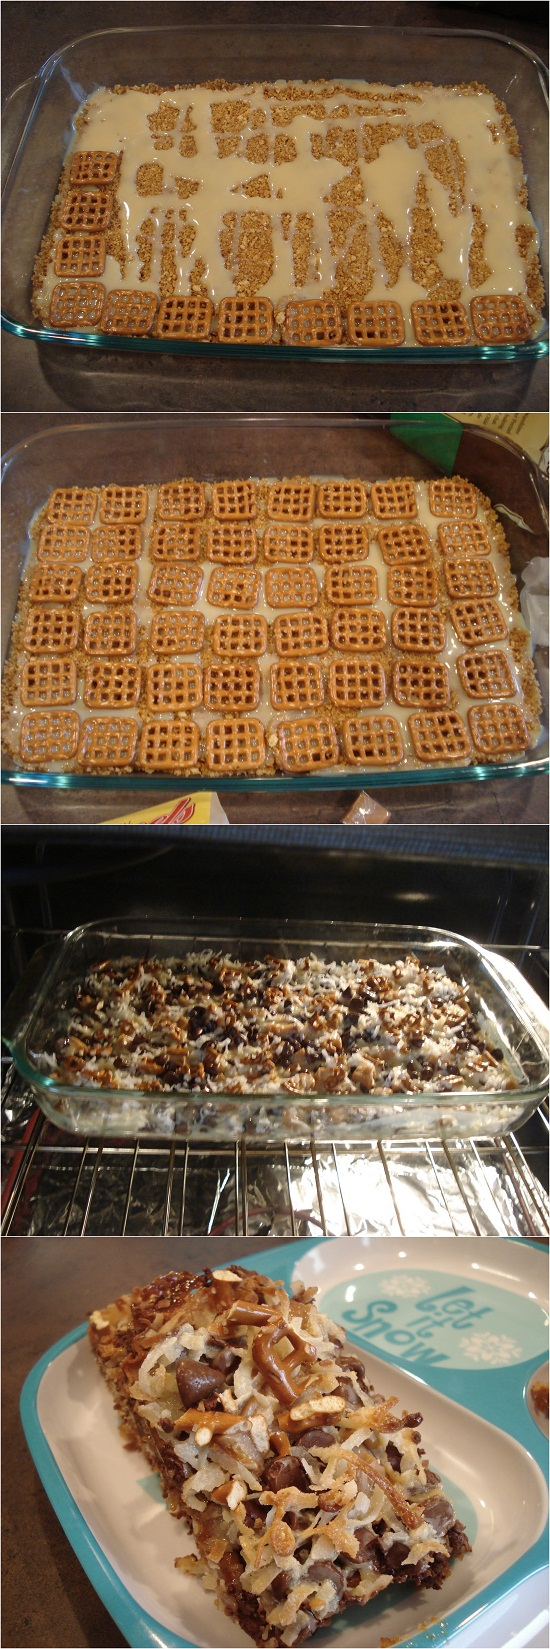 Caramel-Pretzel-Magic-Bars-Recipe